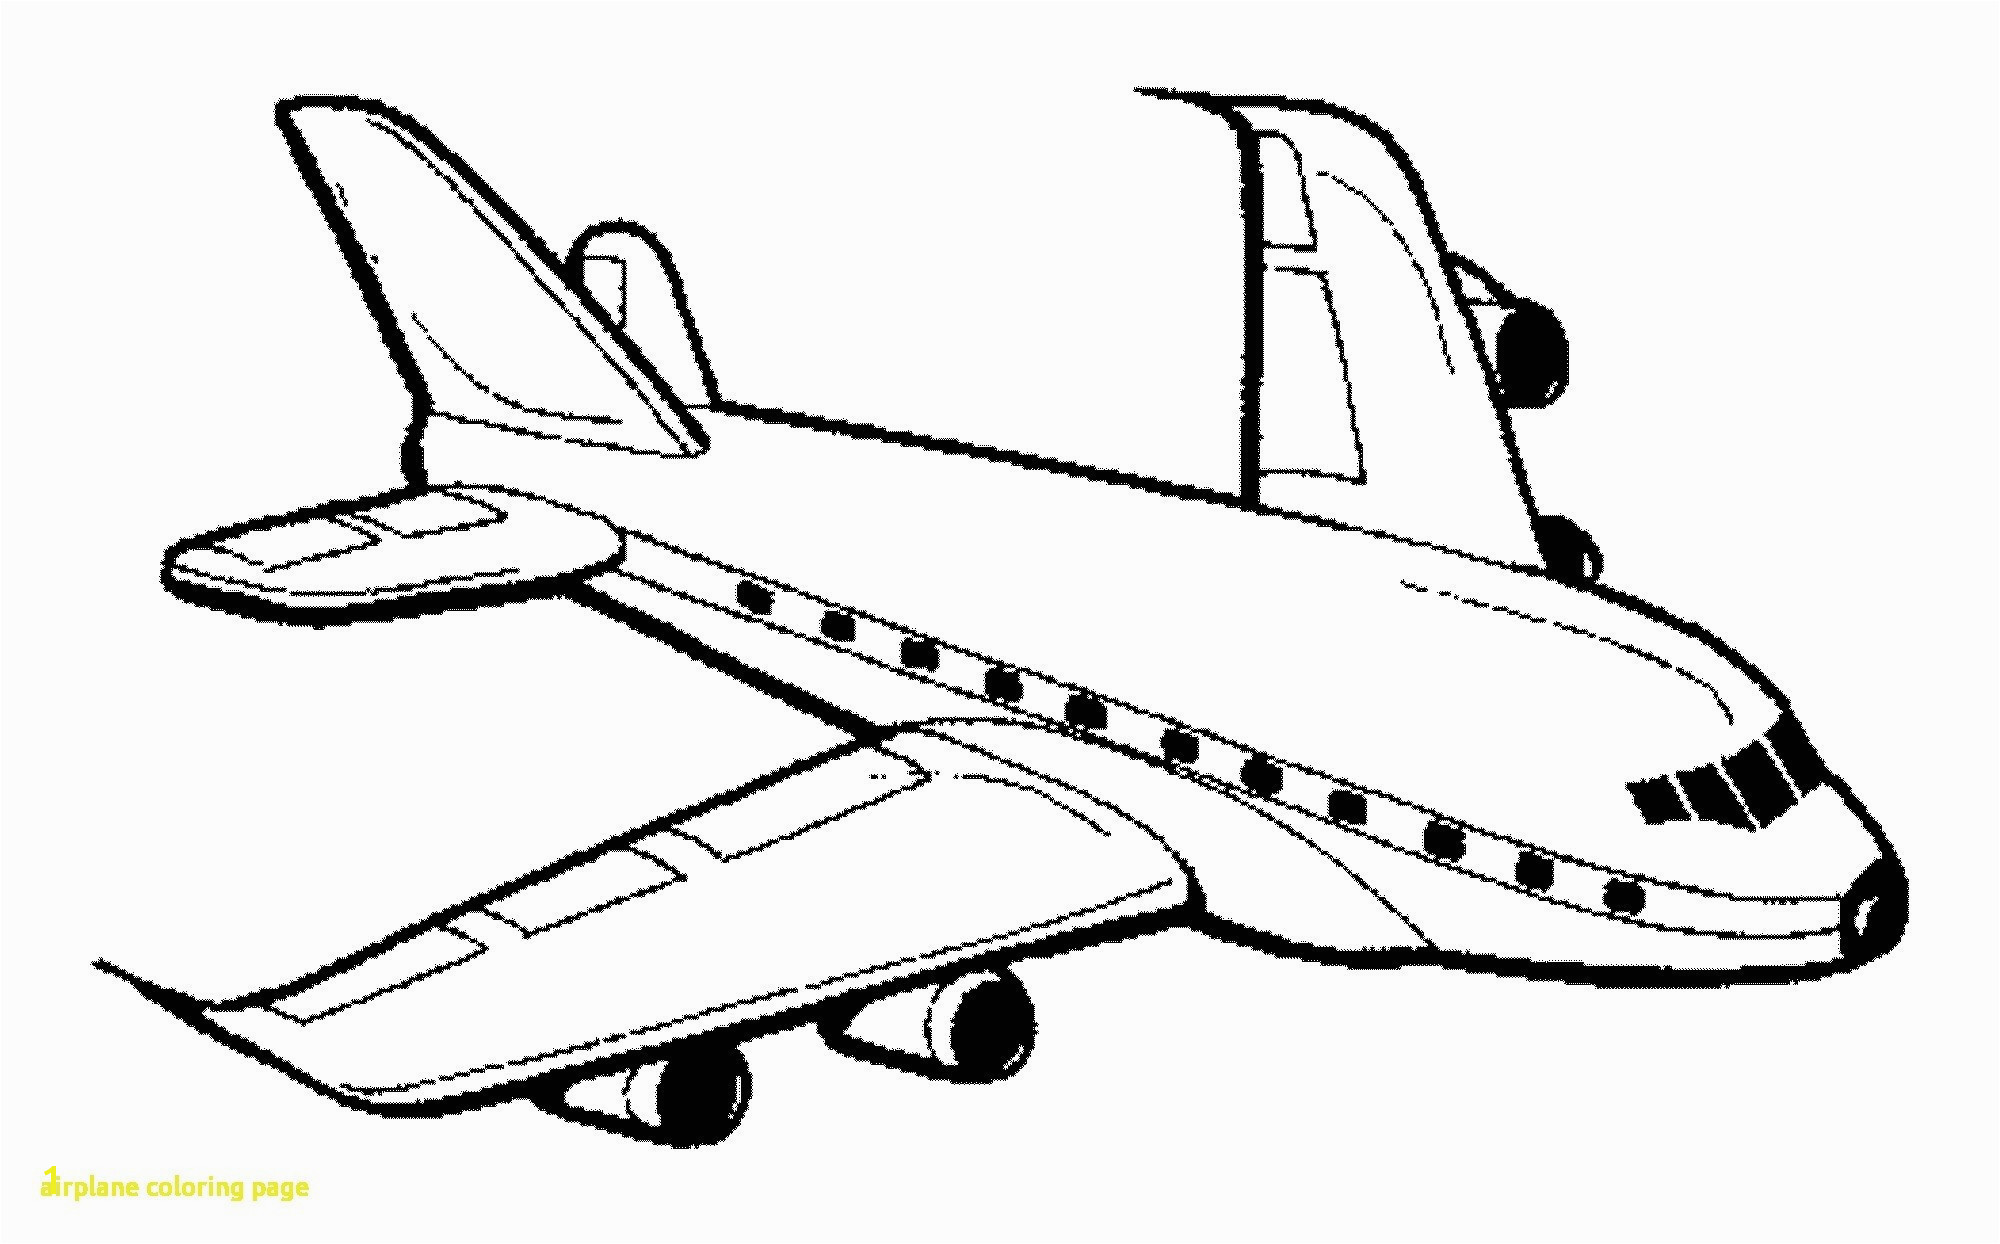 Airplane Coloring Pages Best Airplane Coloring Pages Printable Coloring Page Airplane Free Airplane Coloring